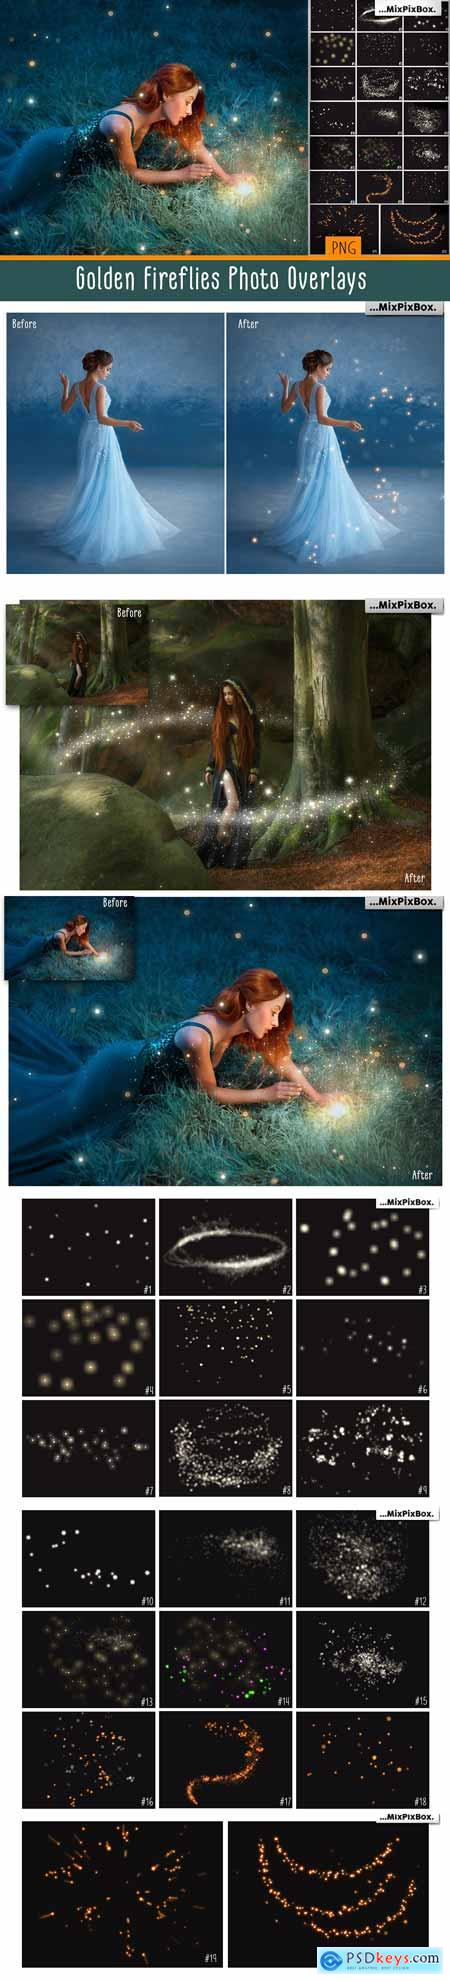 Golden Fireflies Photo Overlays 3407249